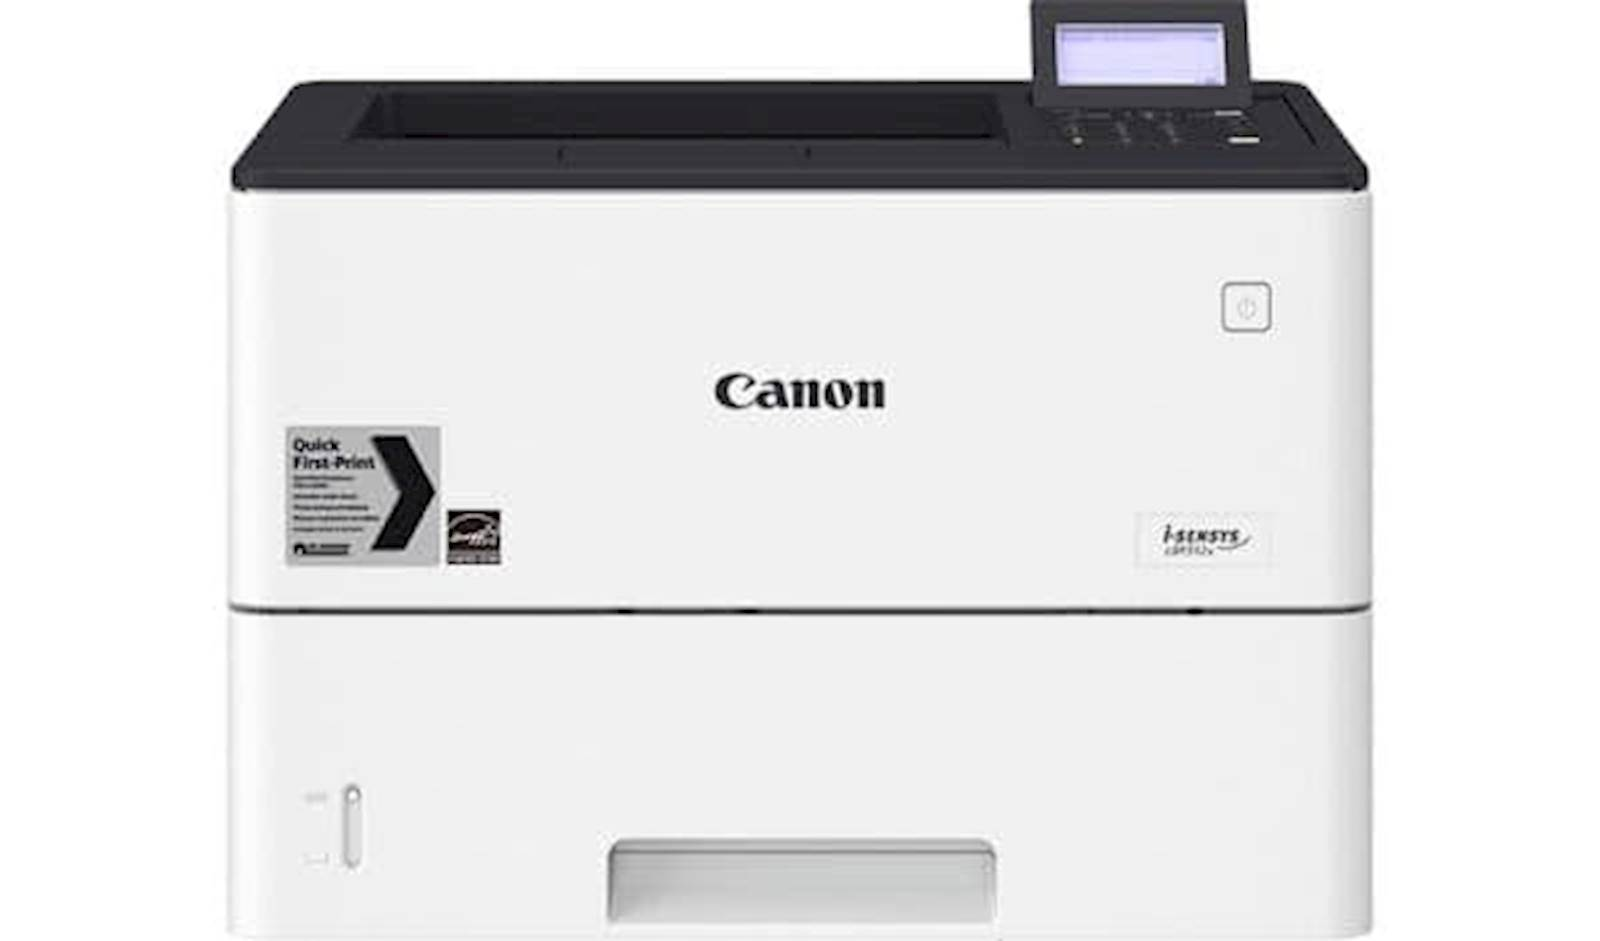 Printer CANON LBP312x